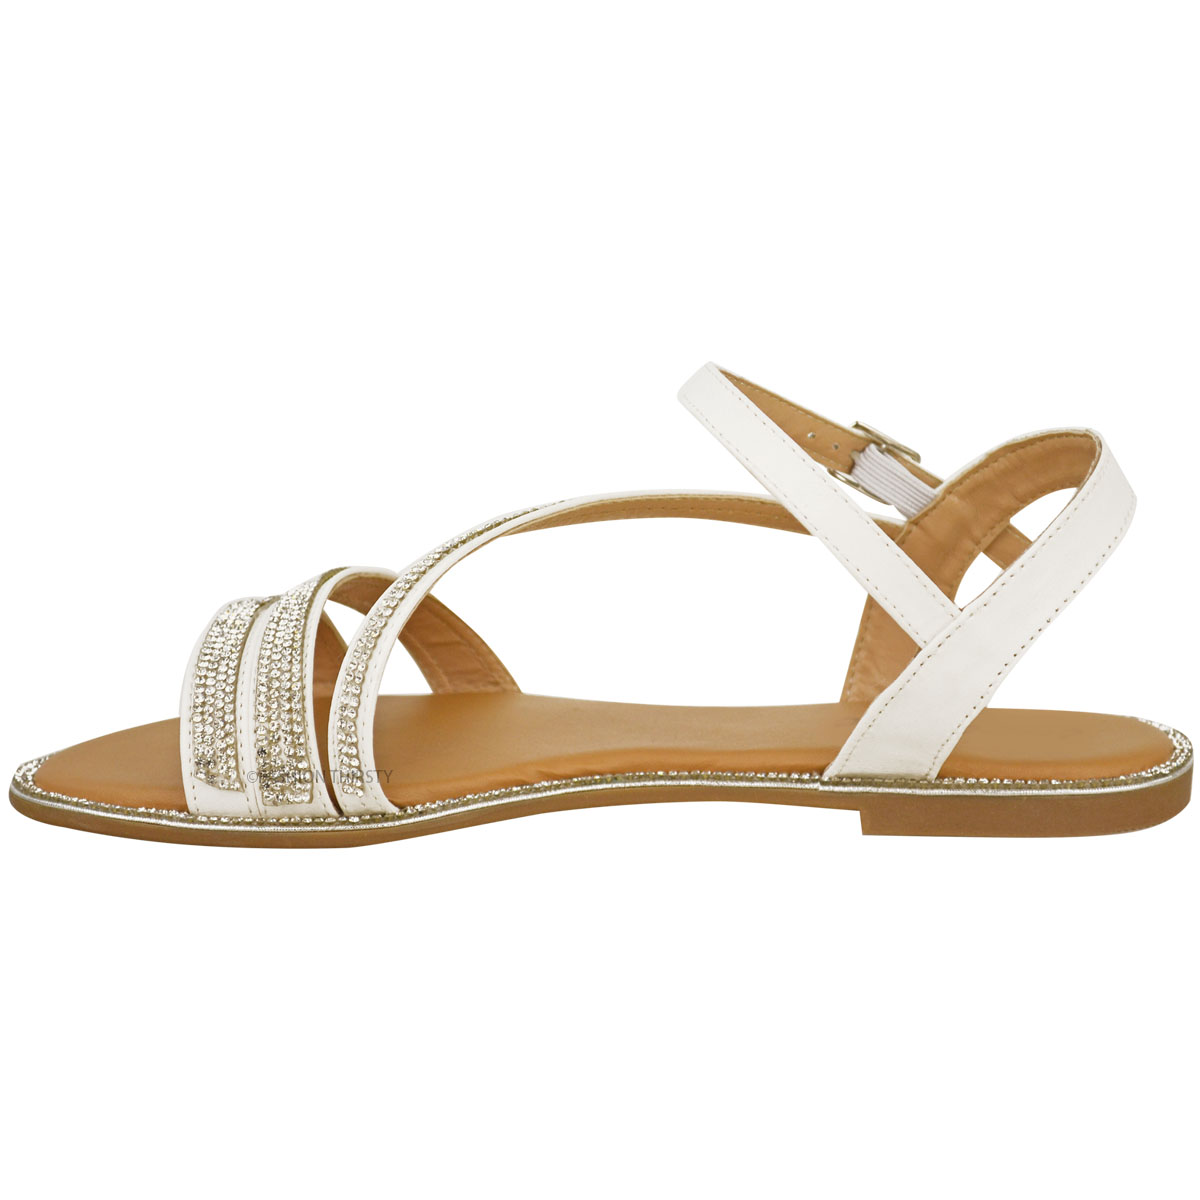 Nina Women's Nina Gaelen Strappy Sandal Wal-Mart USA, LLC $ Fergalicious. Women's Fergalicious Tinker Strappy Sandal. $ $ at Walmart. The Fergalicious Tinker Strappy Sandal is a chic cage shoe with a stiletto heel and woven detailing.